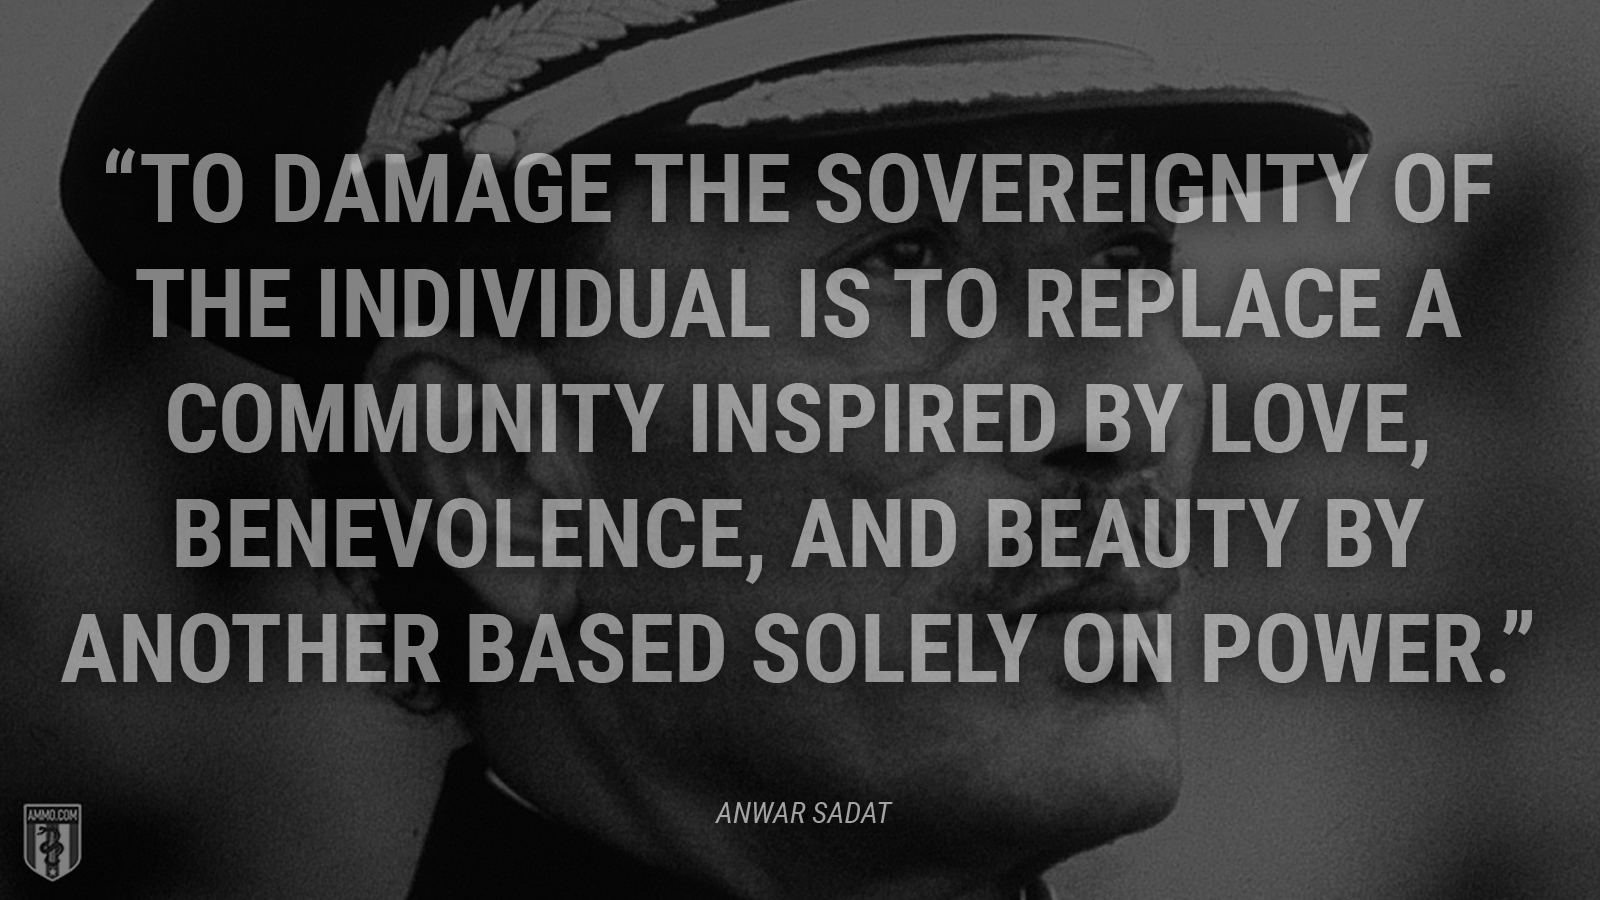 """To damage the sovereignty of the individual is to replace a community inspired by love, benevolence, and beauty by another based solely on power."" - Anwar Sadat"